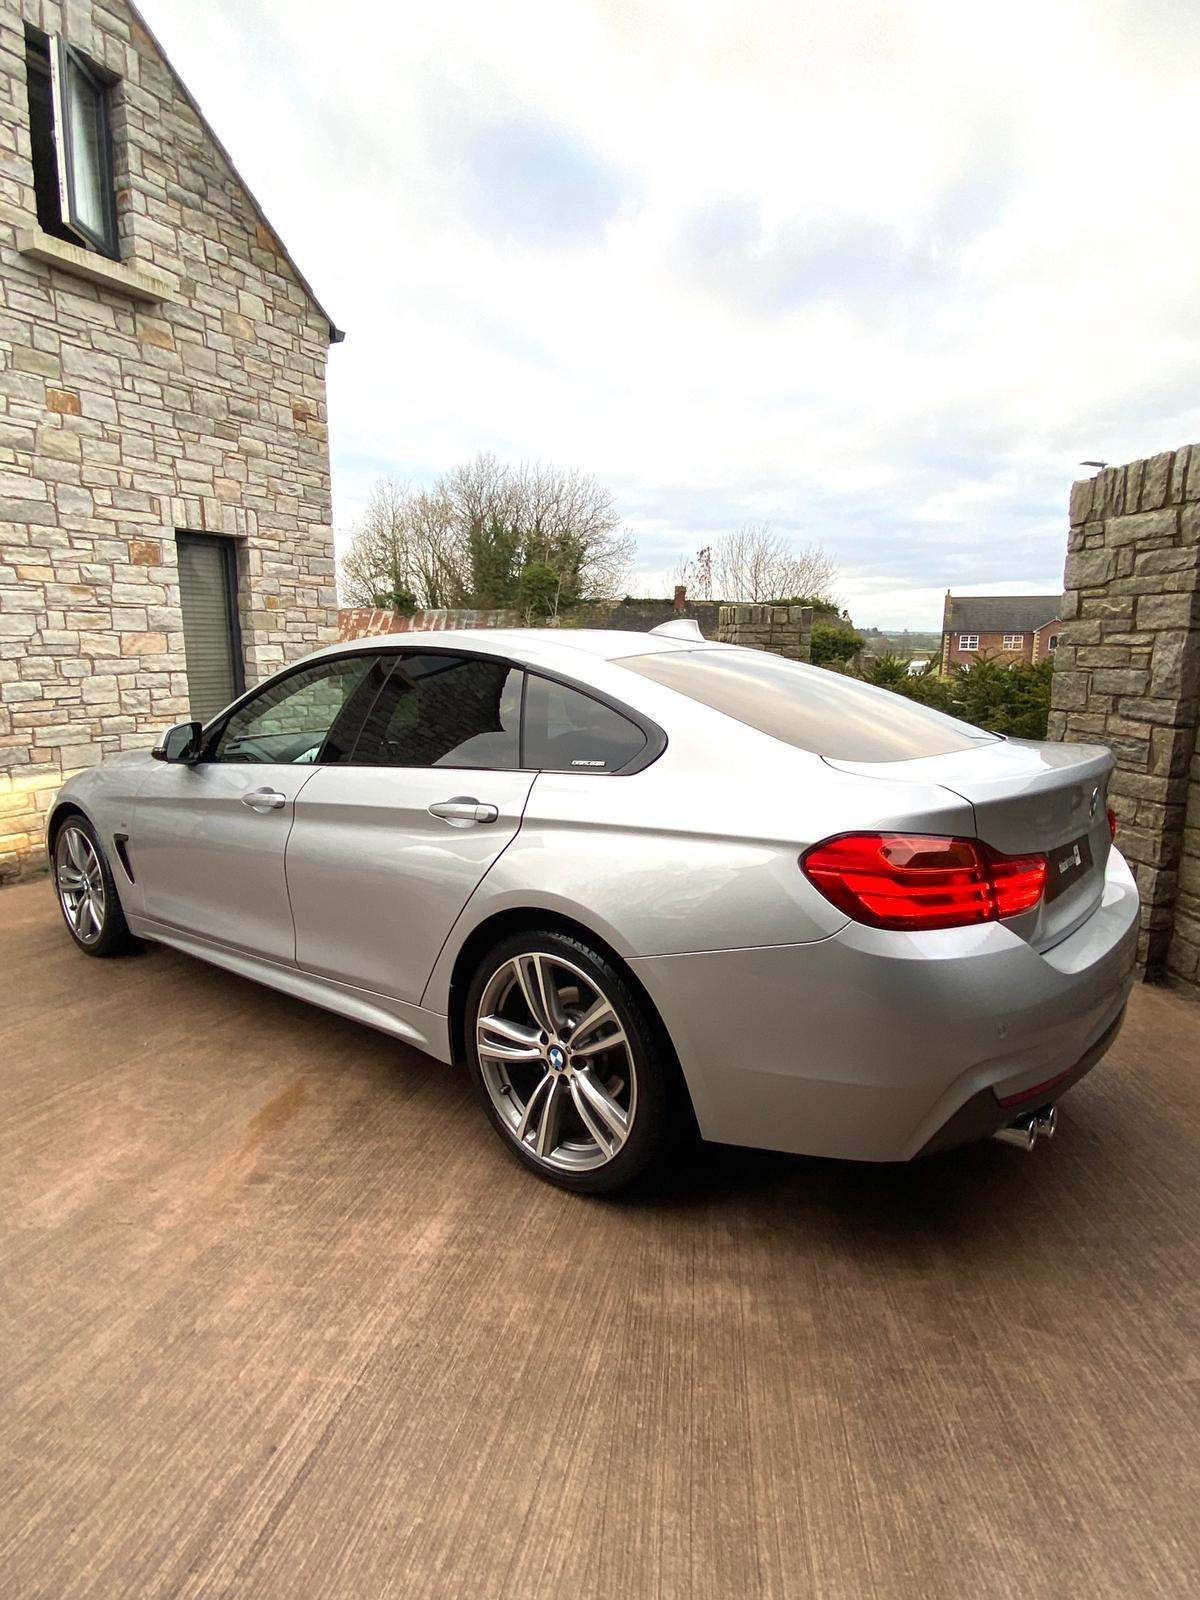 2015 BMW 4 Series Gran Coupe 2.0 420d M Sport Gran Coupe (s/s) 5dr Diesel Automatic – Moyway Motors Dungannon full